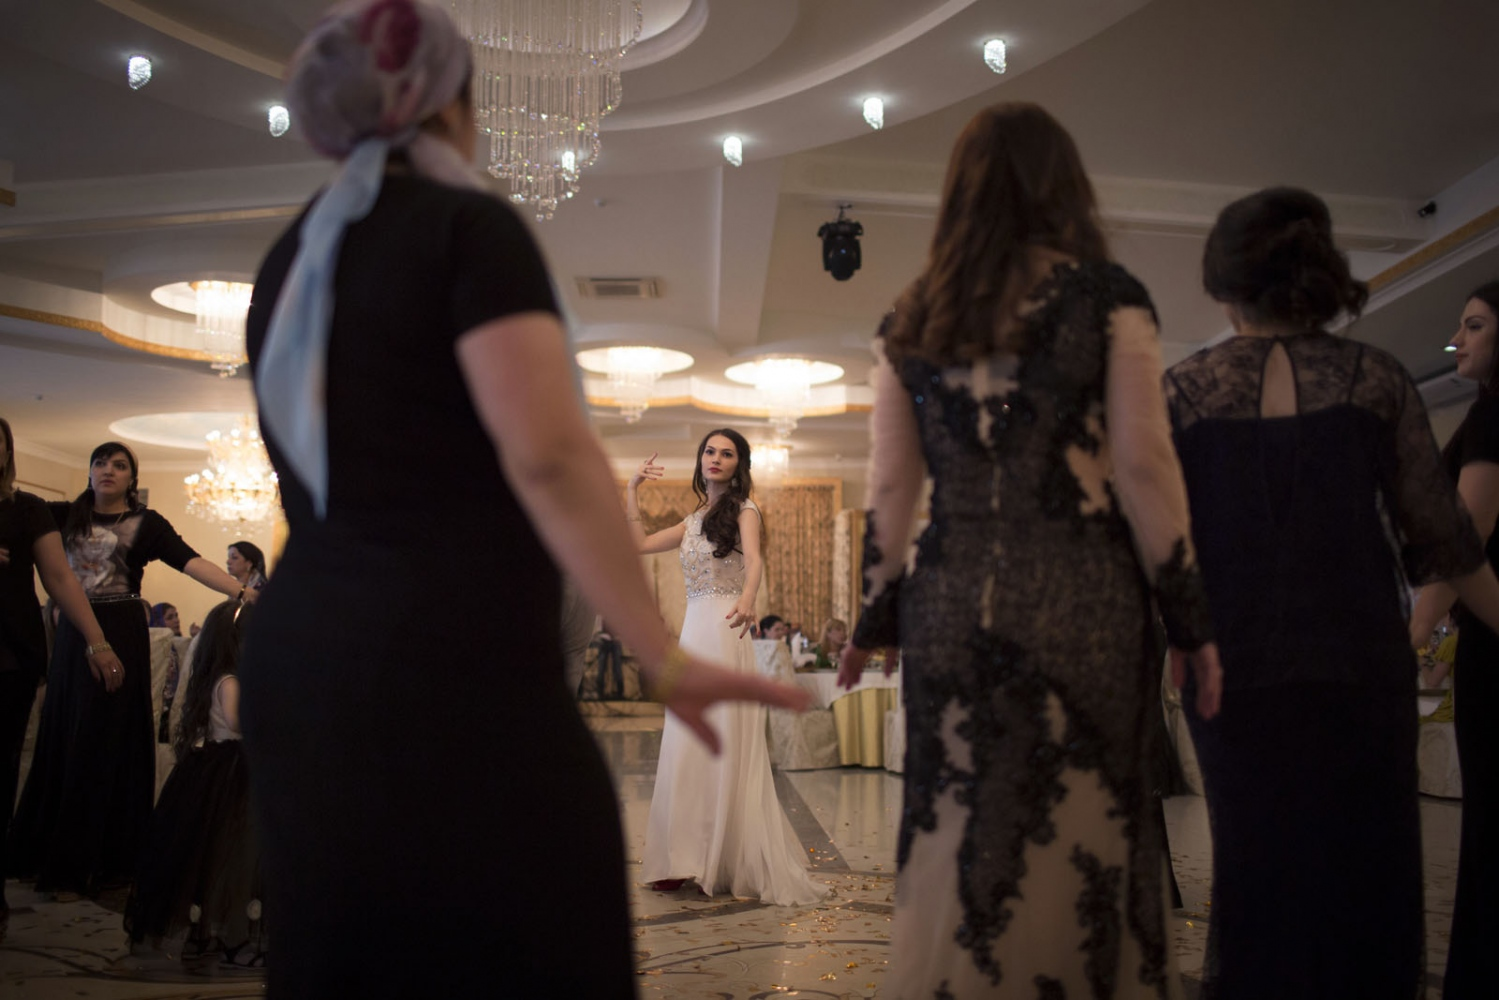 Dagestan men and women dance on the dance floor during a wedding in an expensive wedding hall in Makhachkala. During weddings in Dagestan men and women sit and eat separately and only mix on the dance floor.